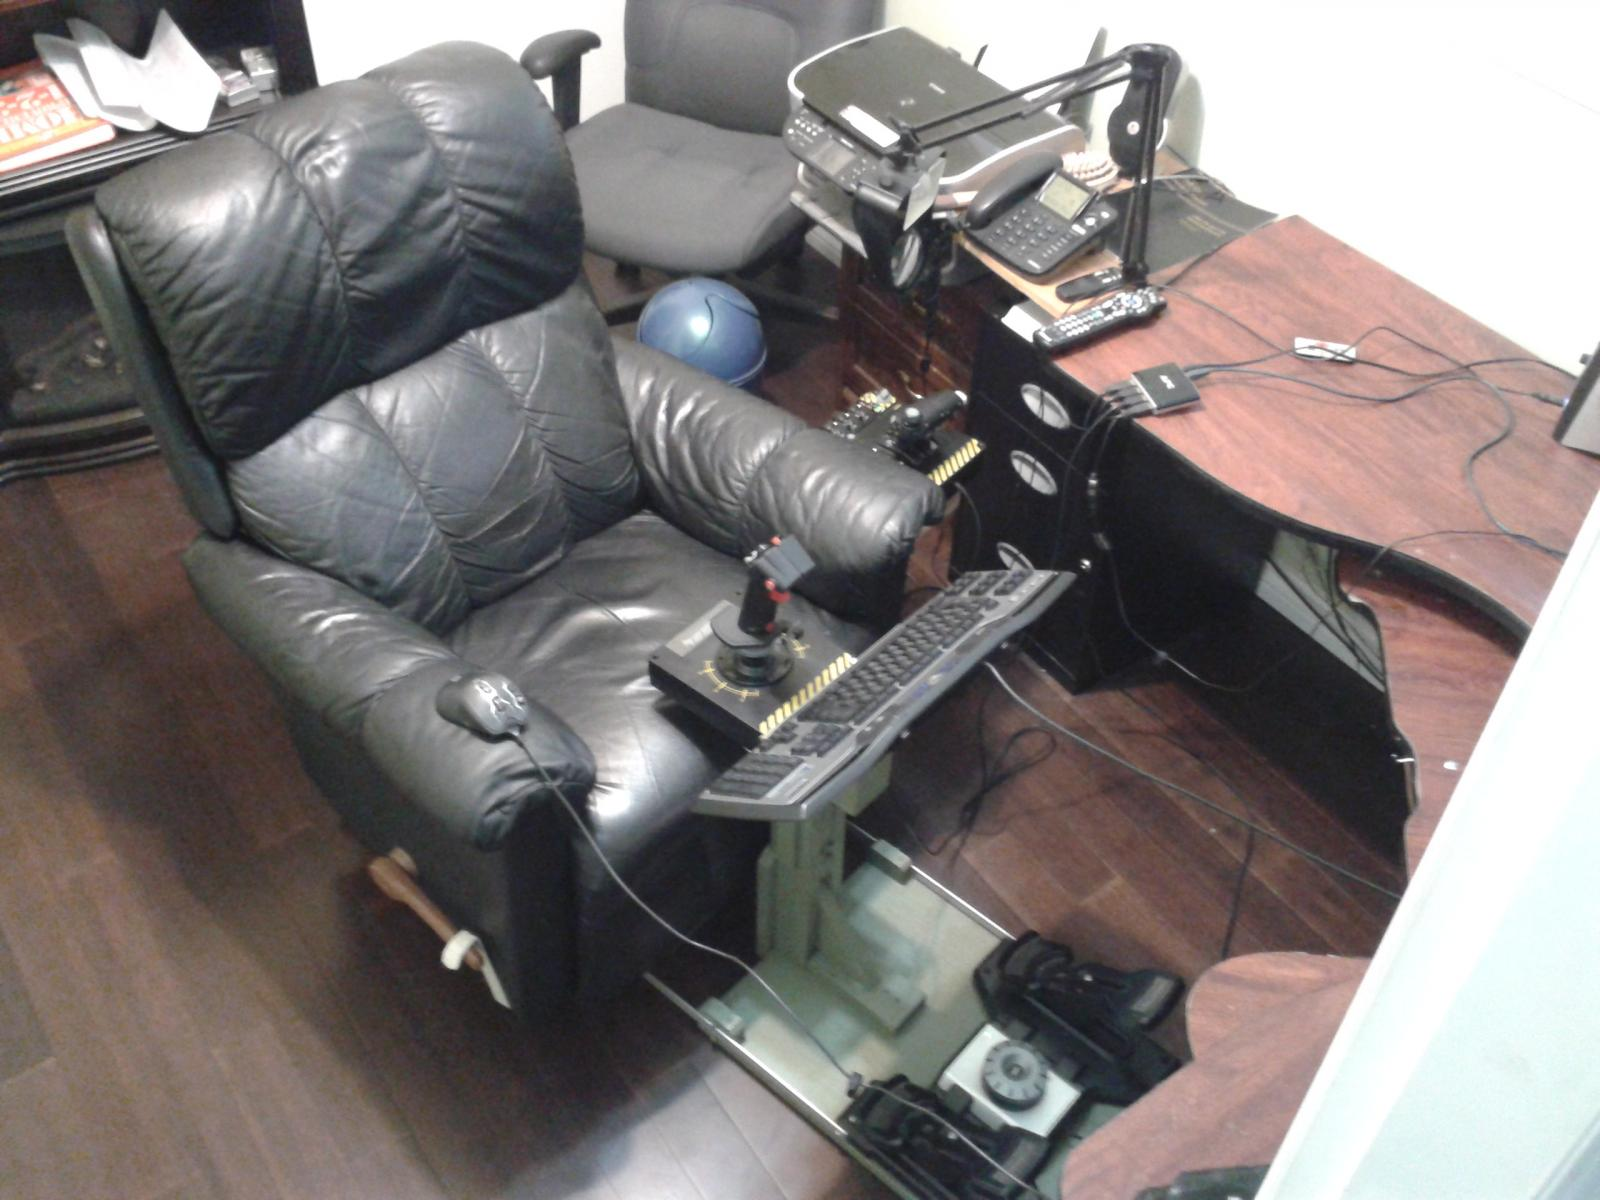 office chair joystick mount geri recliner my ghetto flight seat hardware software and controllers il 2 post 639 0 46917200 1398796640 thumb jpg